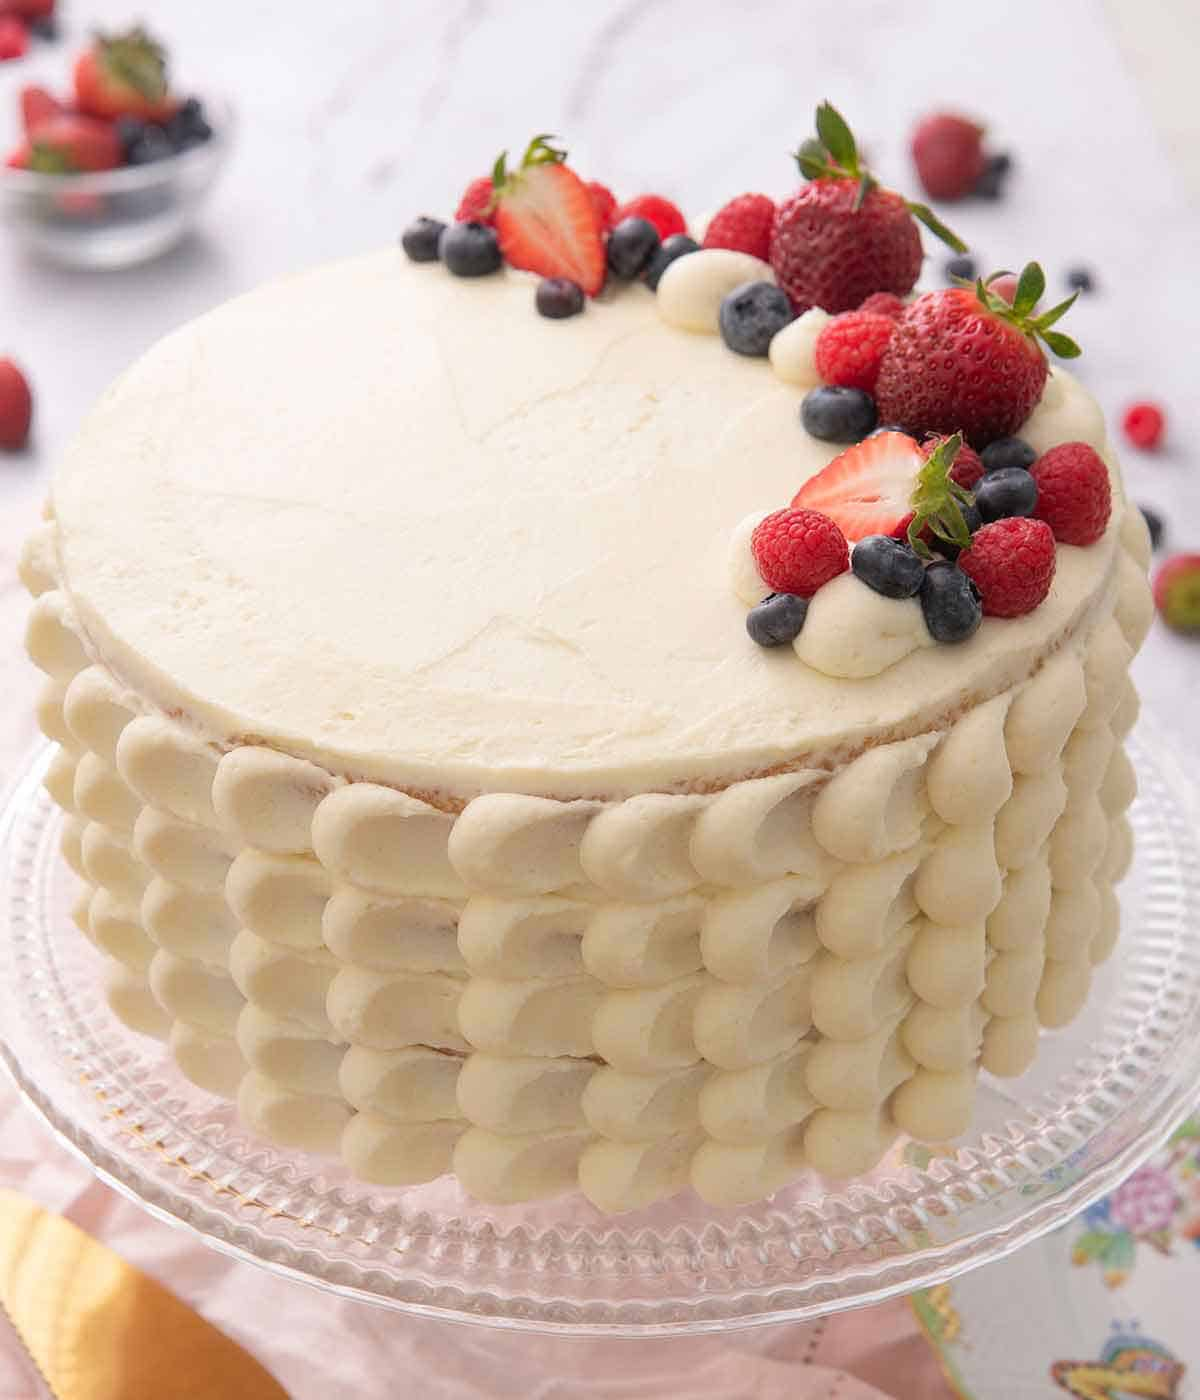 A Chantilly cake with fresh berries right aligned on the cake's top.